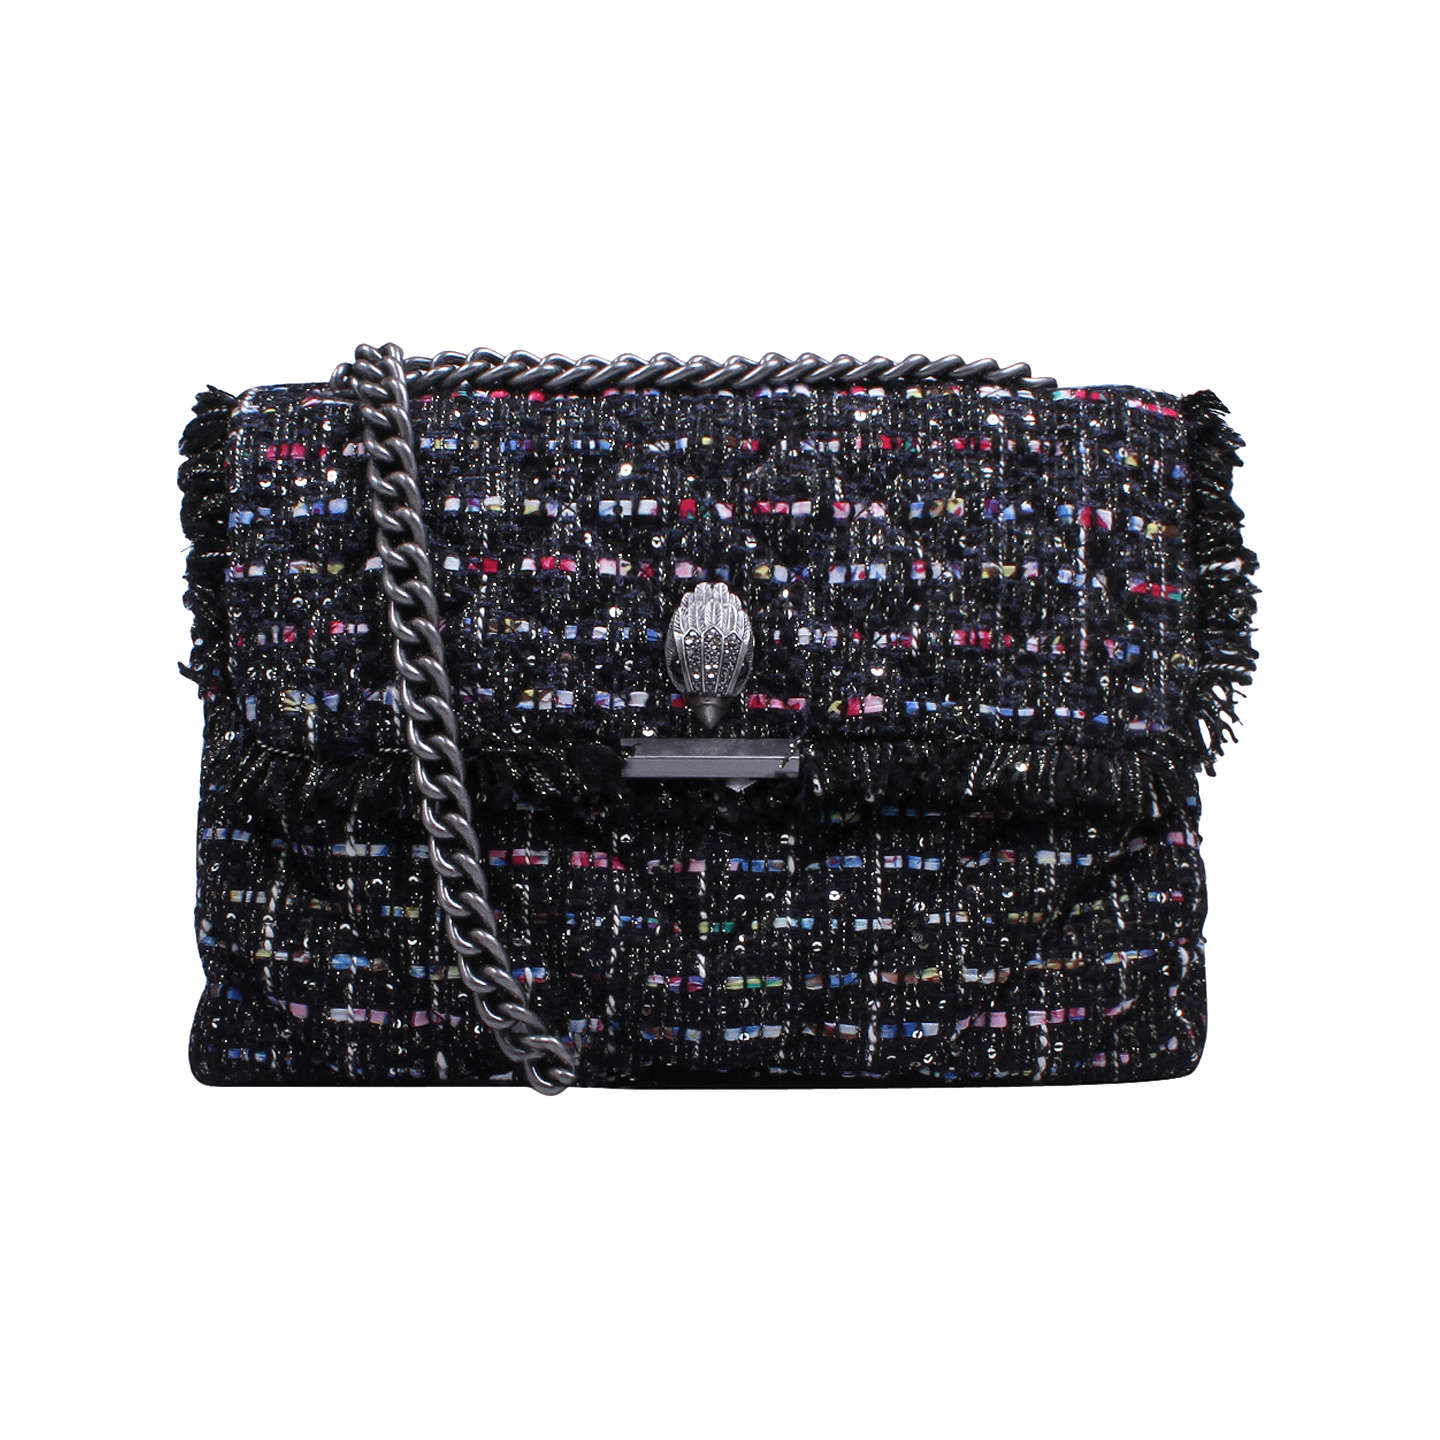 BuyKurt Geiger Kensington Tweed Large Cross Body Bag, Black Online at johnlewis.com